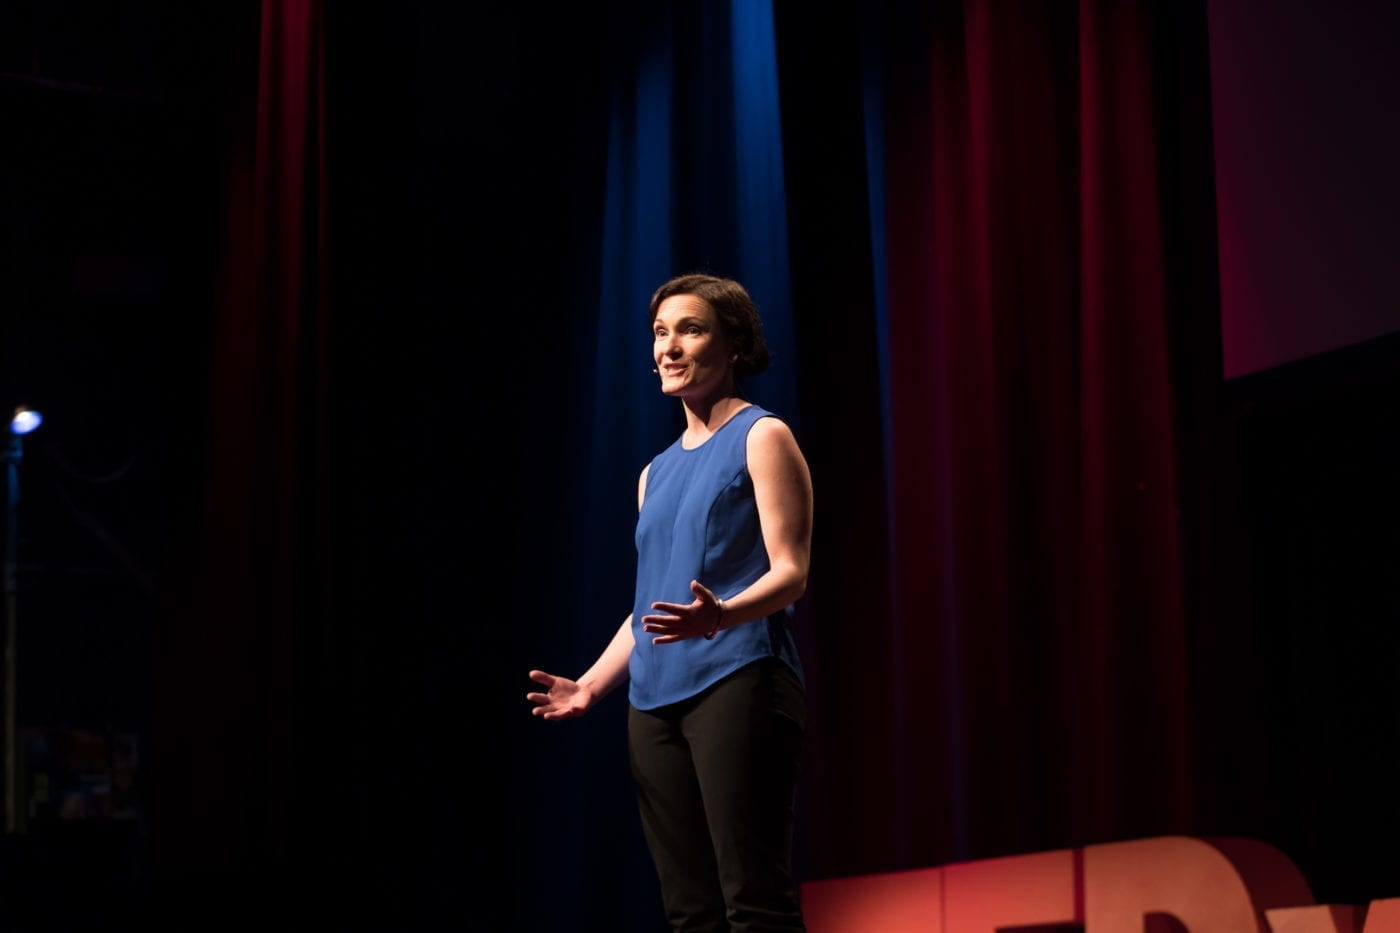 Tessa Boyd-Caine Delivering Her TEDx Talk At TEDx Brisbane